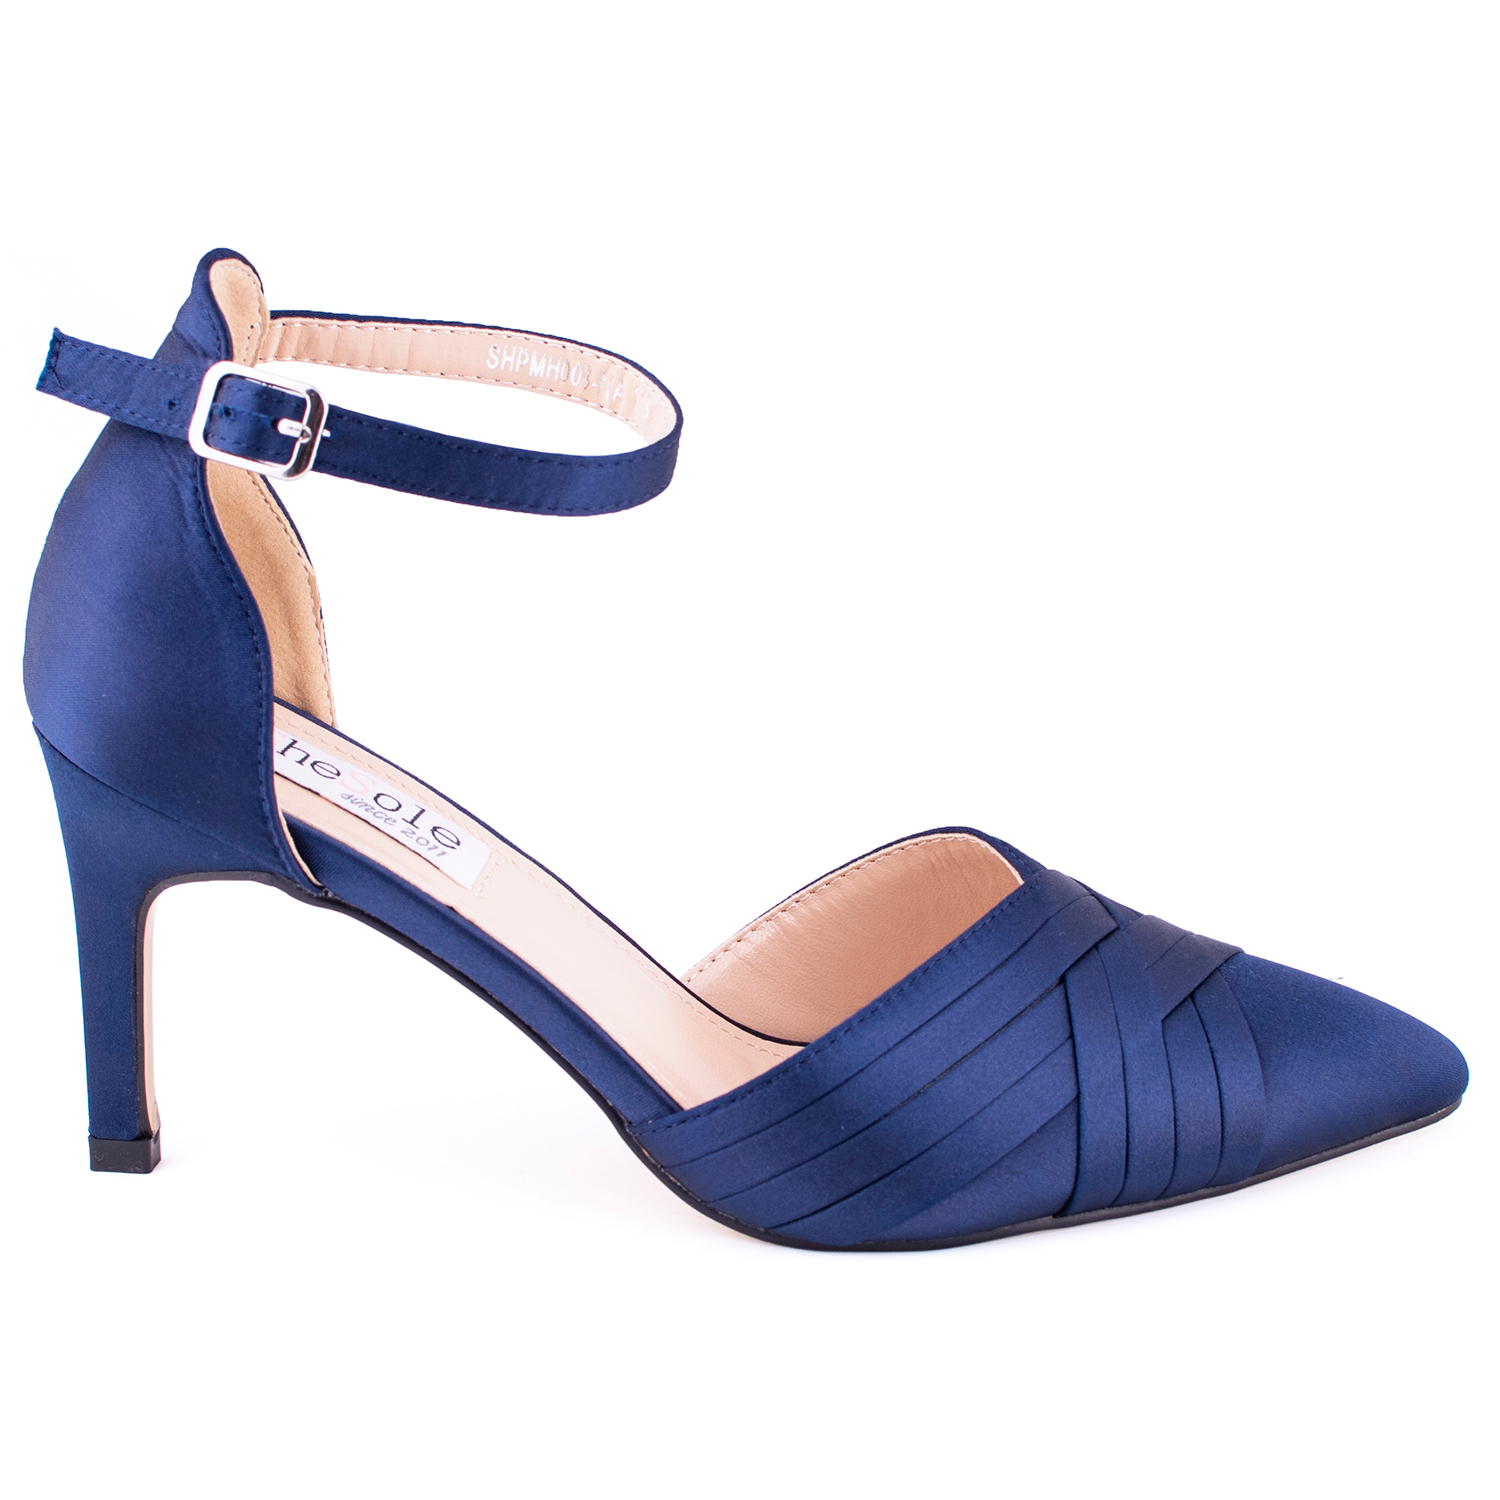 Womens-Stiletto-High-Heels-Pointed-Pumps-Ankle-Strap-Party-Prom-Work-Court-Shoes thumbnail 14